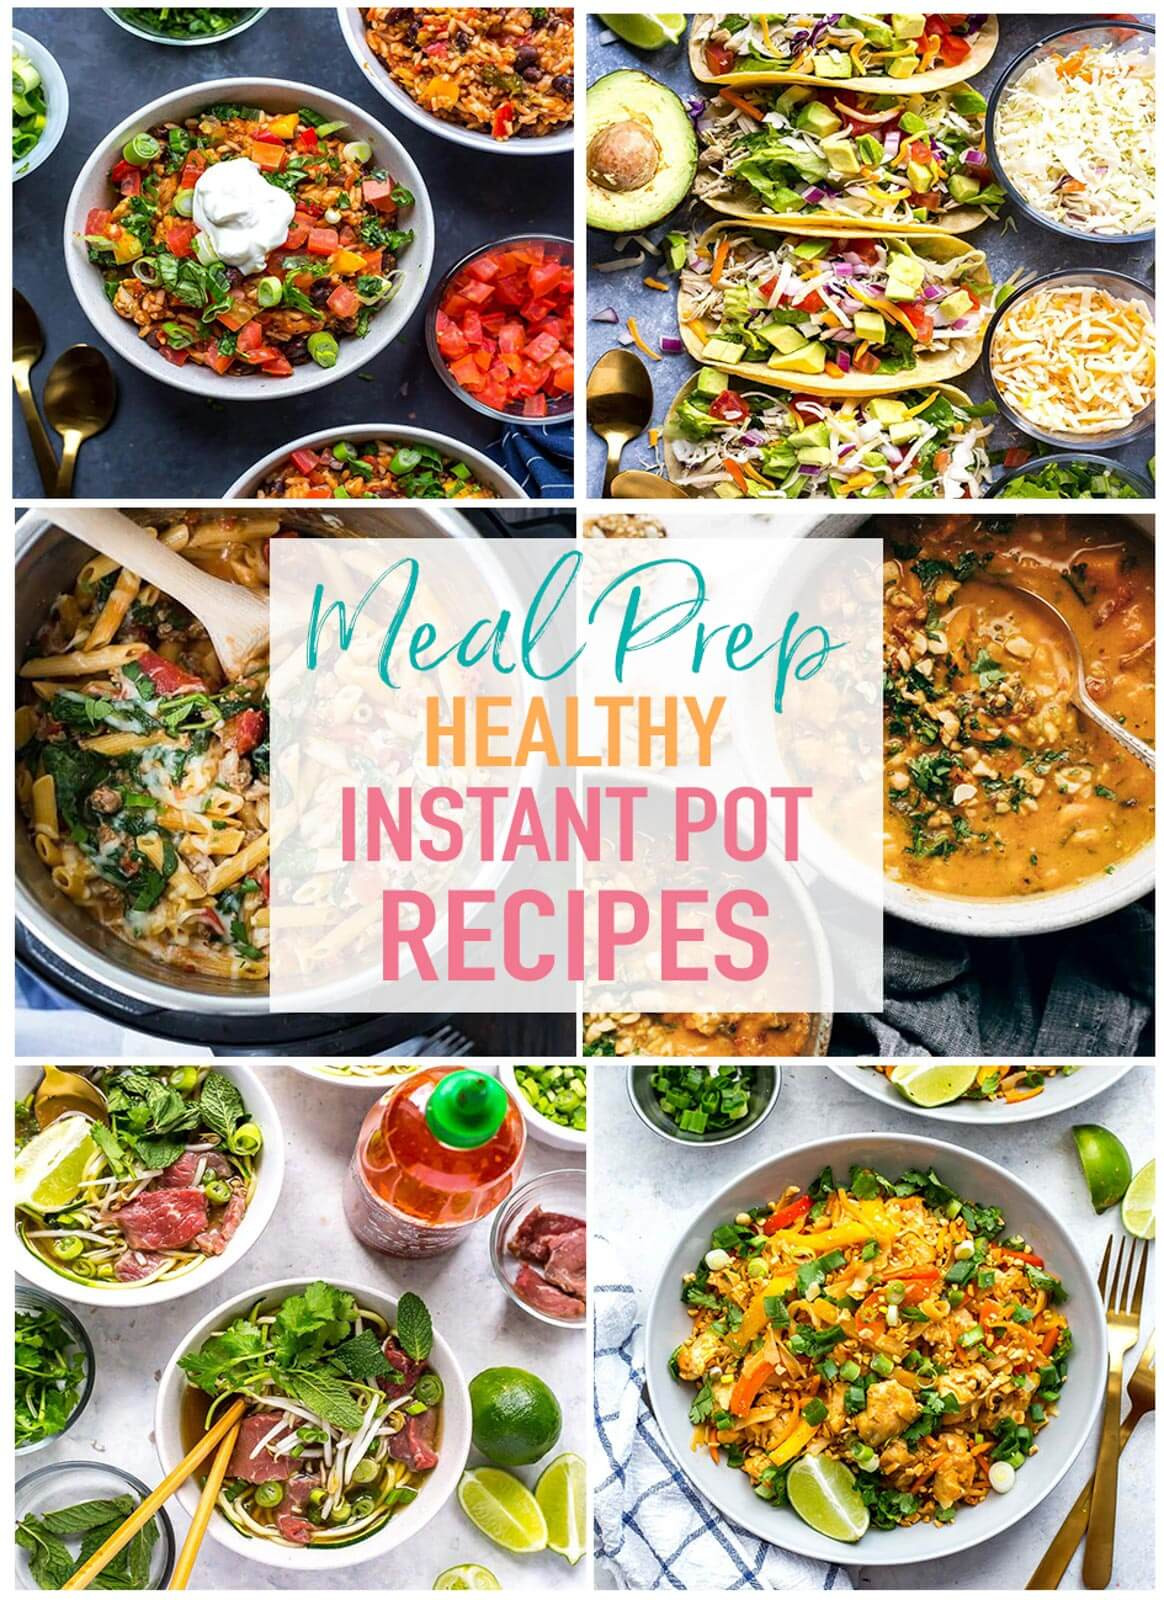 Healthy Recipes For Instant Pot  17 Healthy Instant Pot Recipes for Meal Prep The Girl on